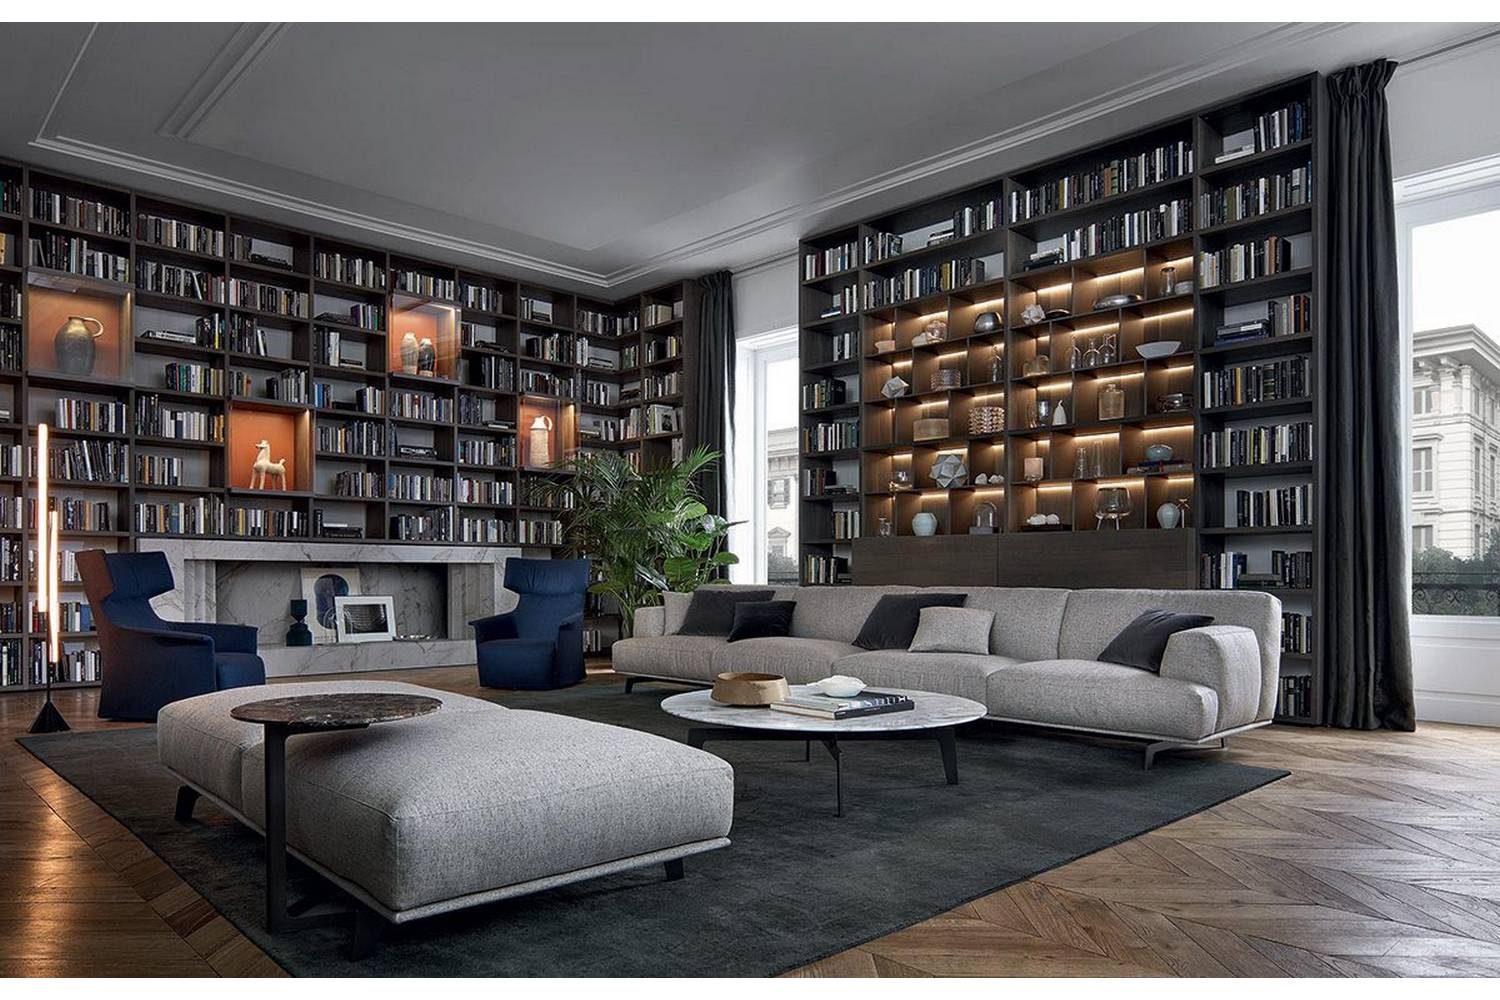 Wall System Bookcase By Crs Poliform For Poliform